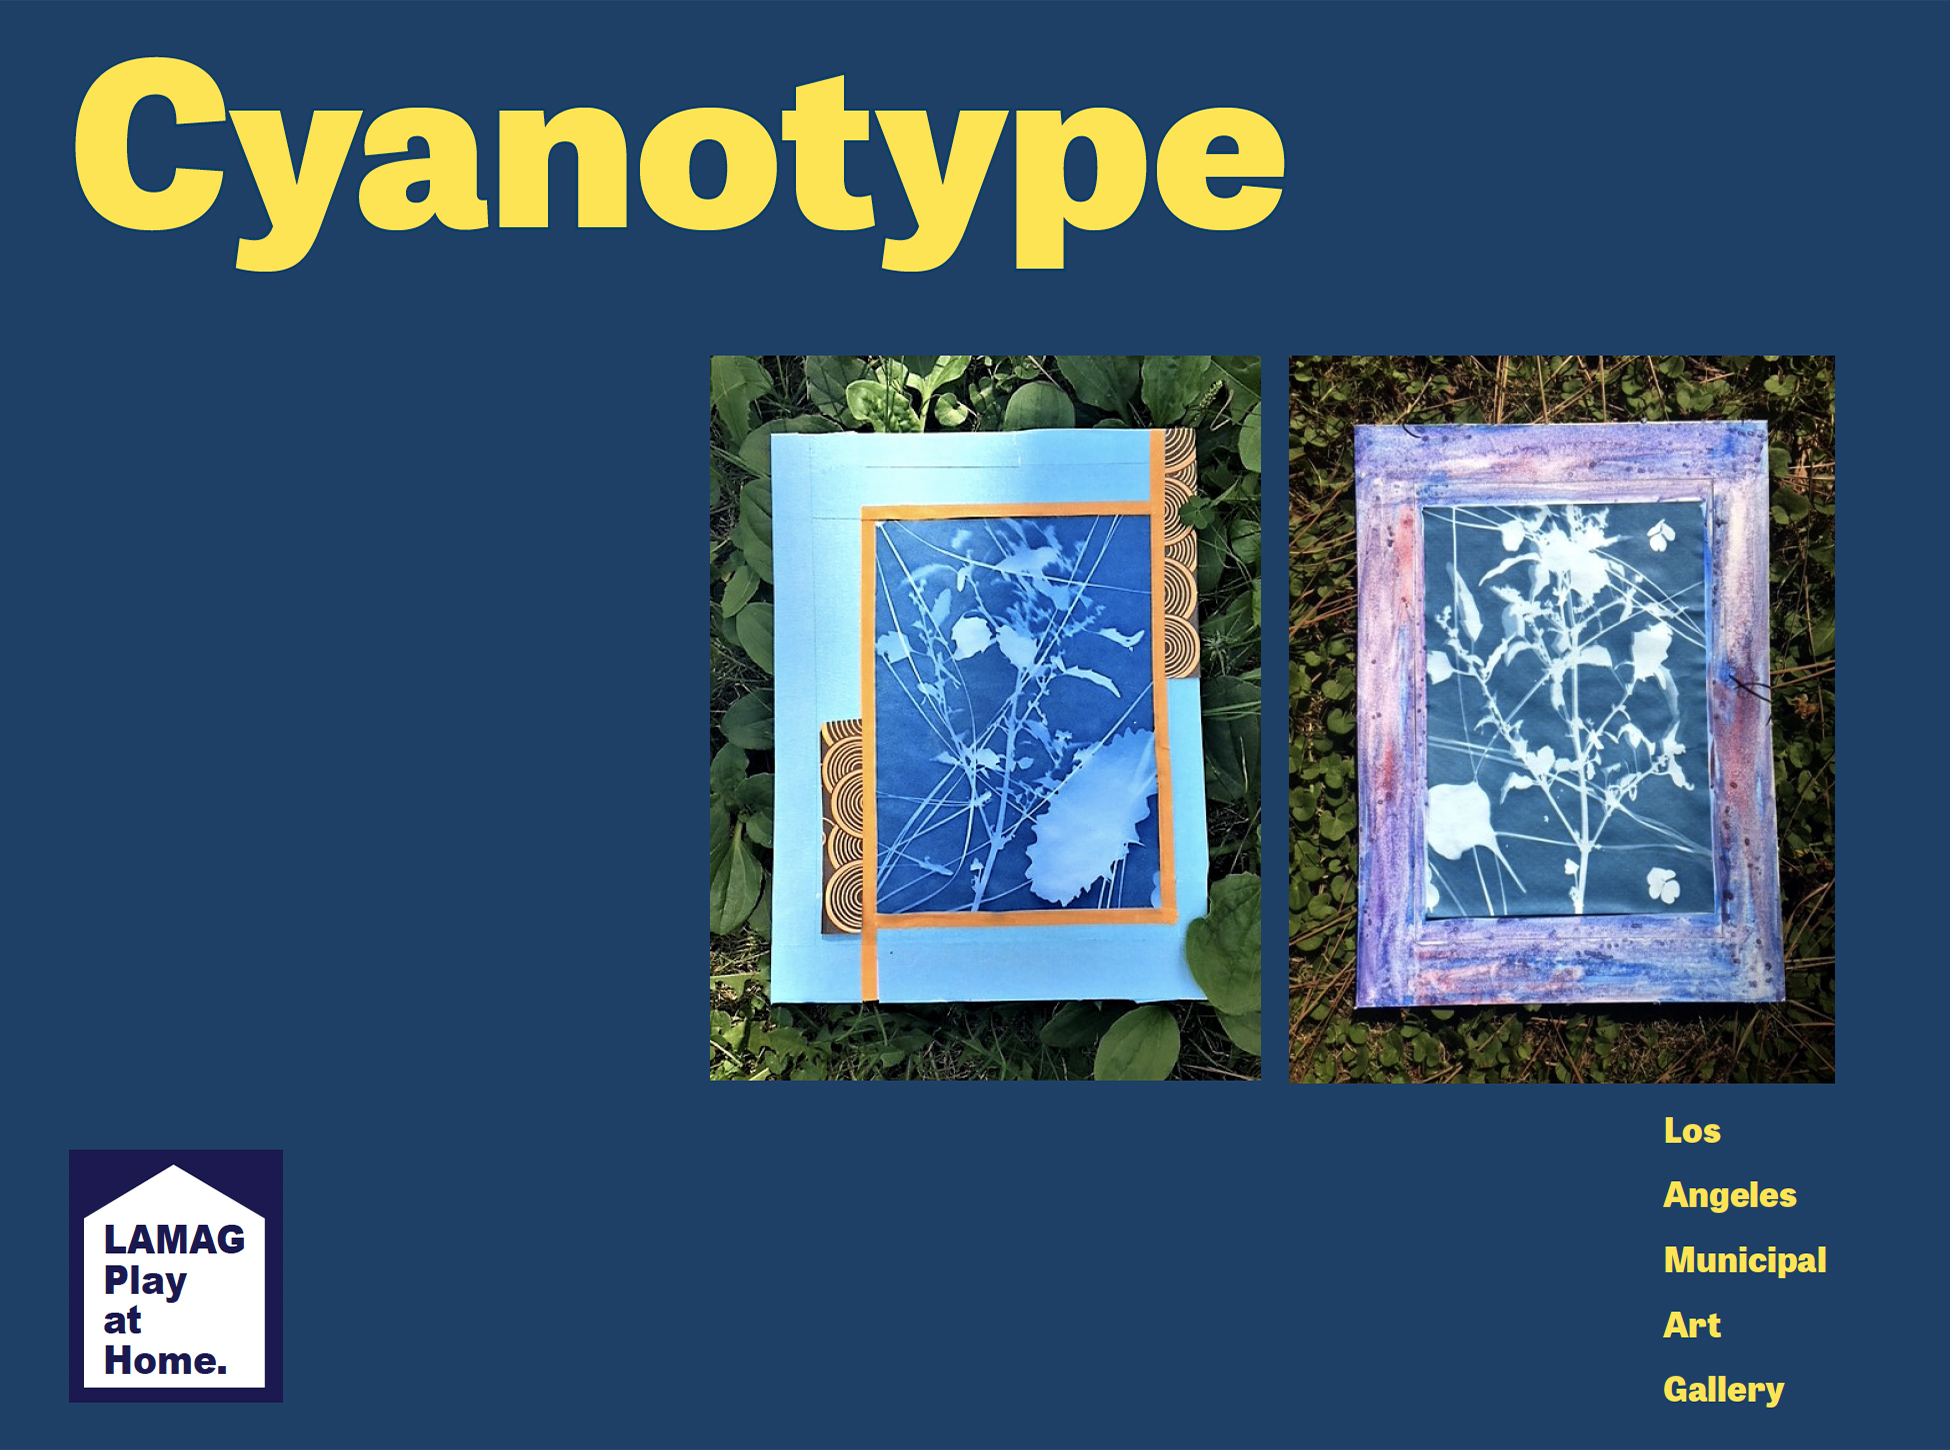 The cover image of the Cyanotype PDF includes a dark blue background and two images of cyanotypes side by side. The cyanotype on the left has a blue paper frame background and is on top of grass. The cyanotype on the right has a purple paper frame and is also placed on top of grass.